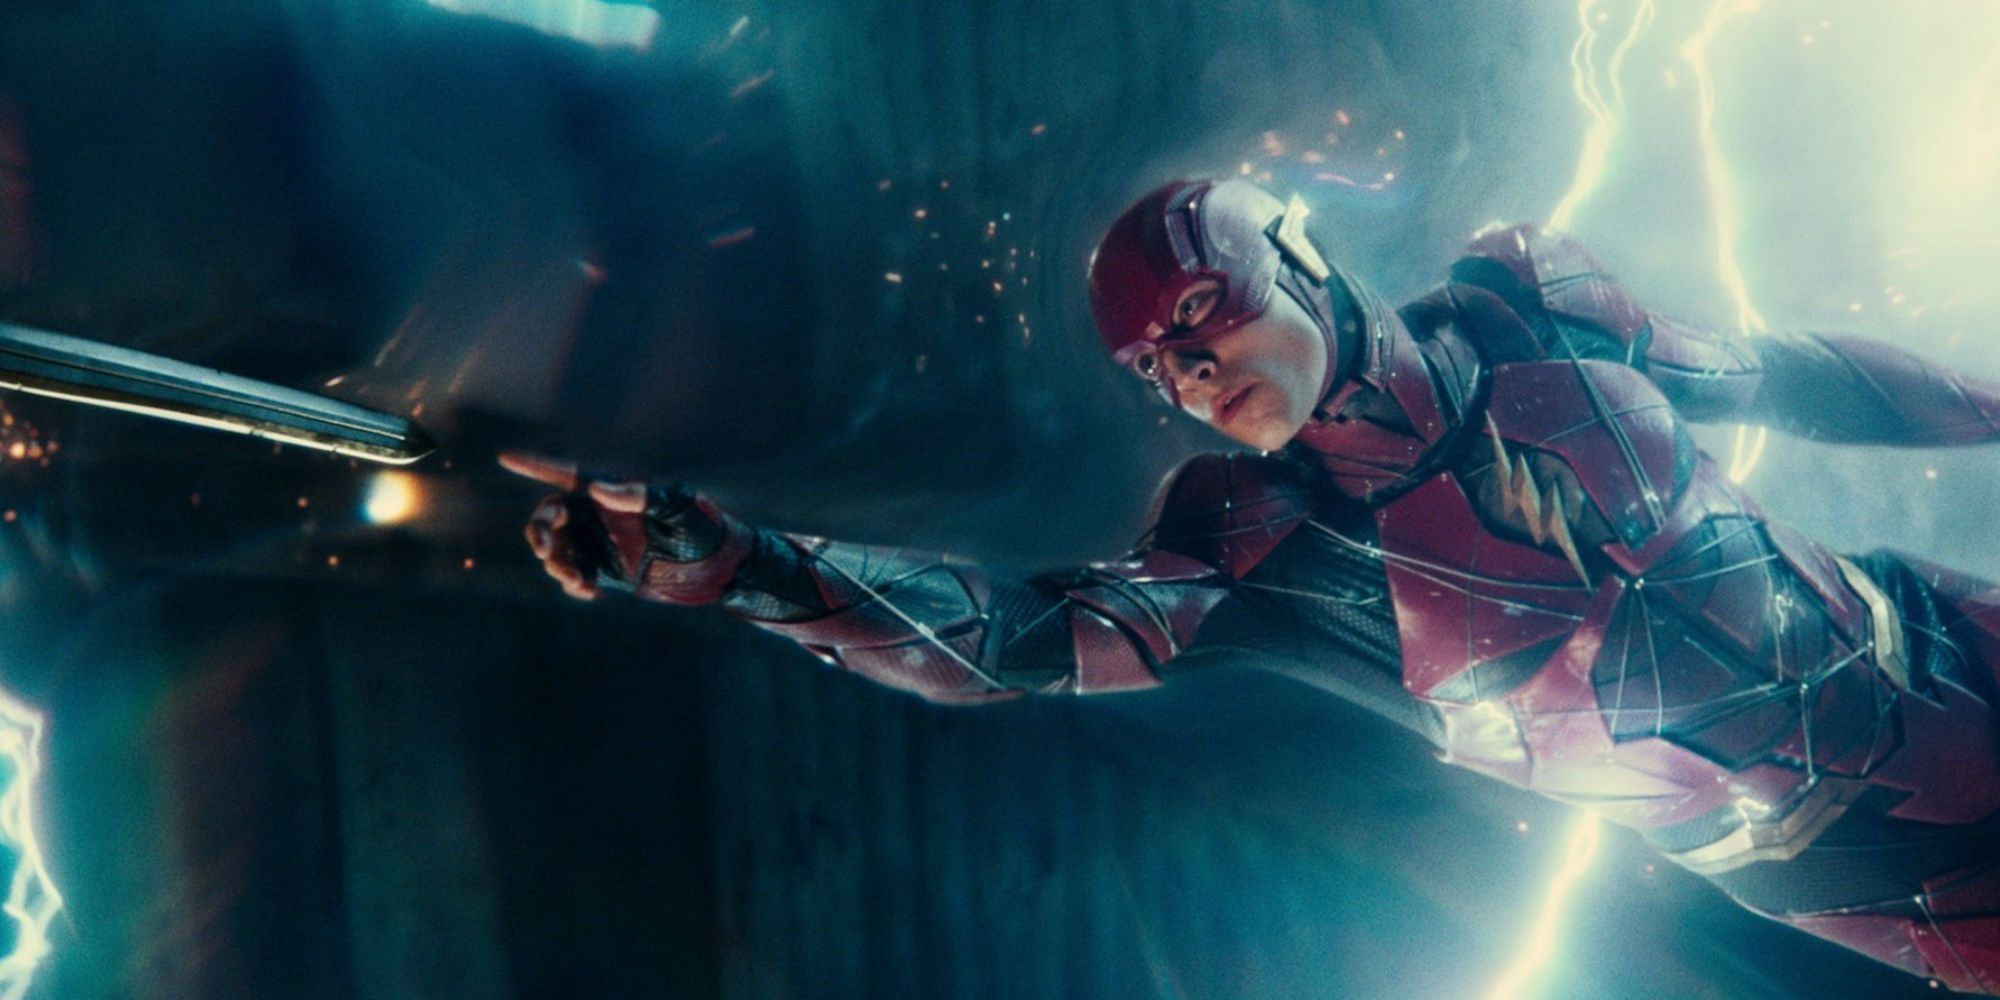 MovieNewsroom | Justice League Image: Snyder Cut's Different Flash Speed Force Effect